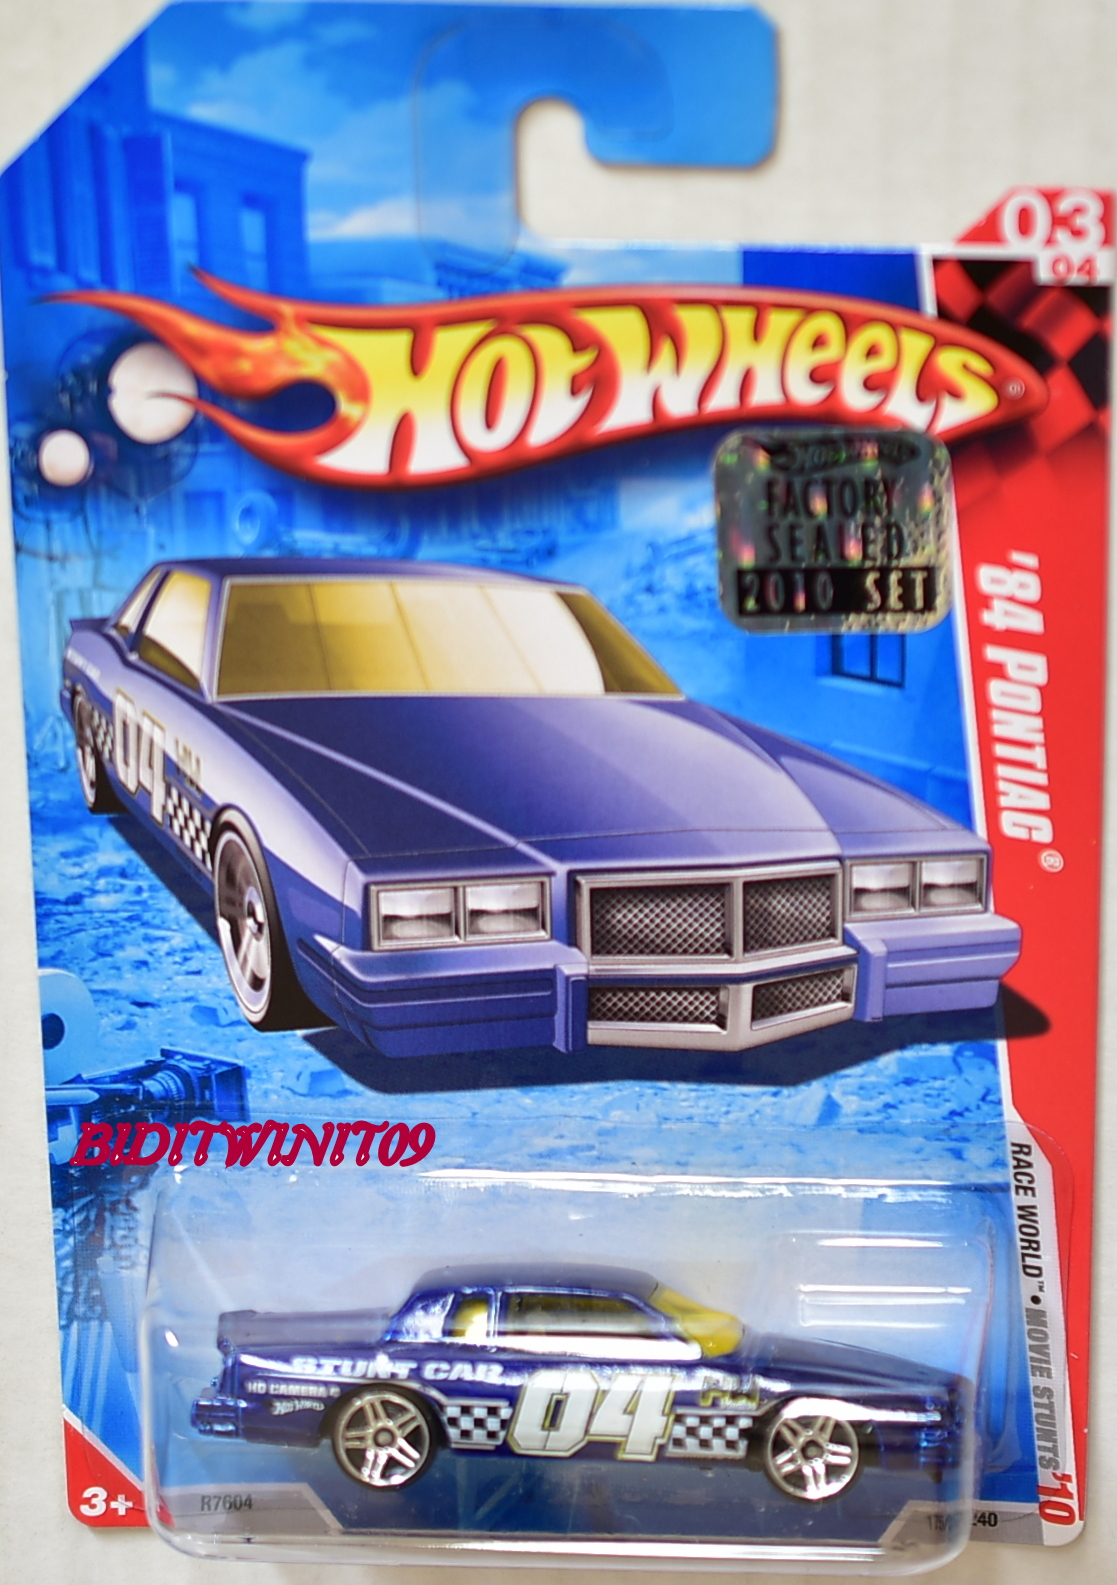 HOT WHEELS 2010 #03/04 '84 PONTIAC RACE WORLD BLUE FACTORY SEALED E+